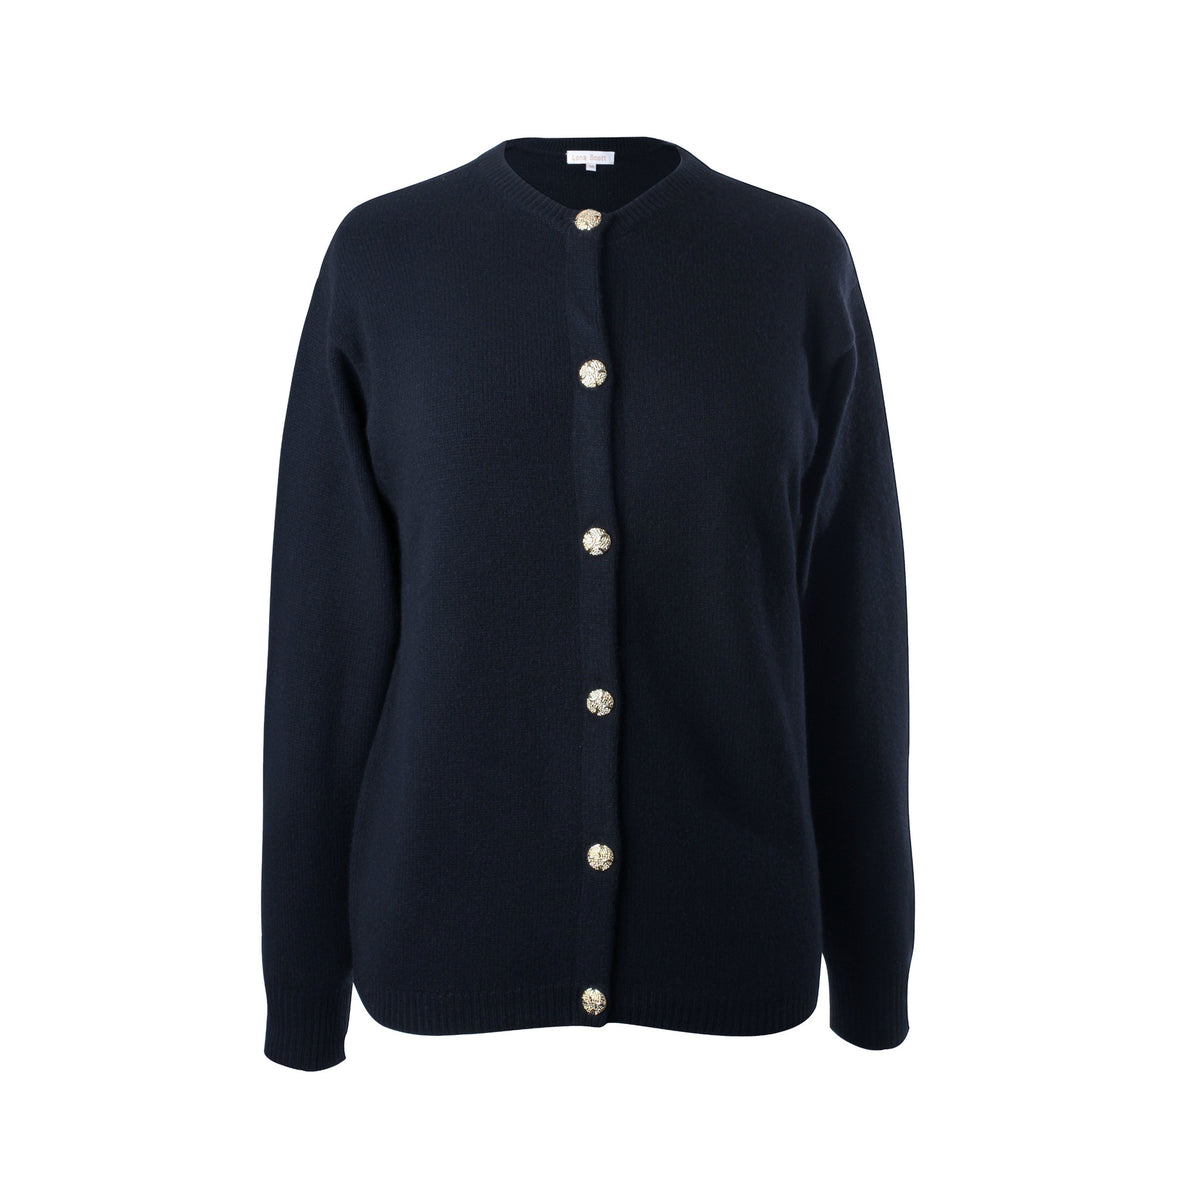 Ladies 3-Ply Cashmere Cardigan | Navy Blue | Shop at The Cashmere Choice | London